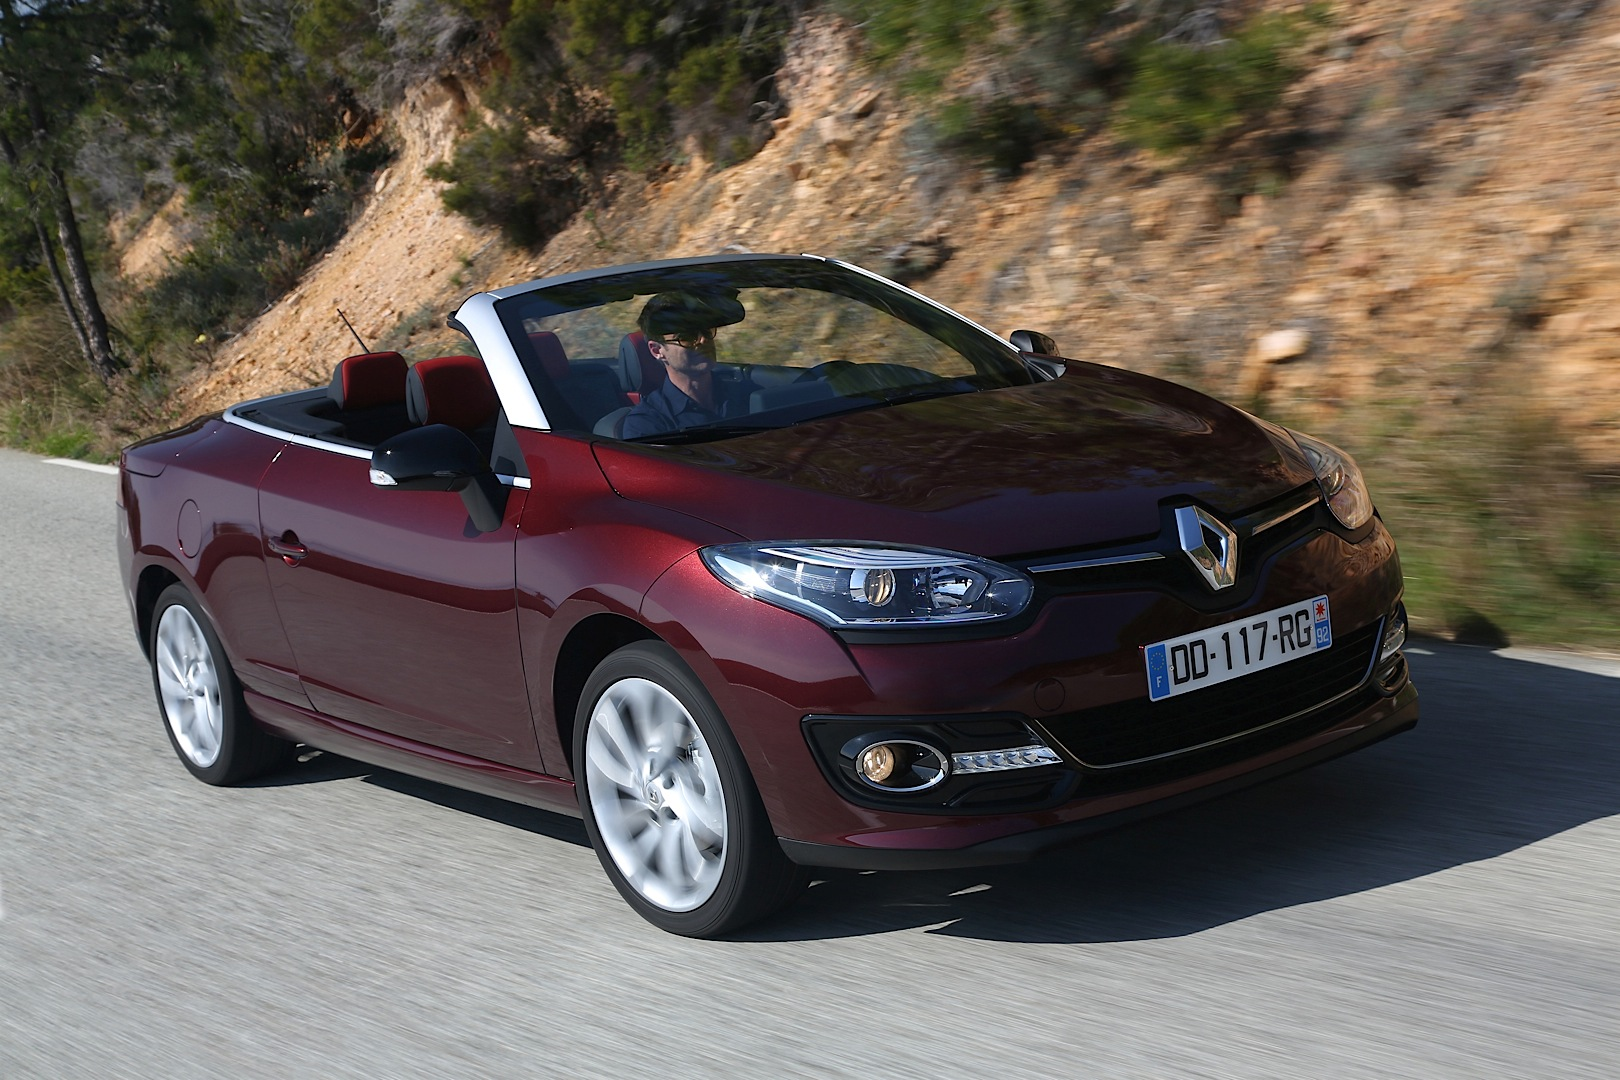 Renault launched megane cc facelift and 1 2 turbo with 130 hp autoevolution - Megane 3 coupe cabriolet ...